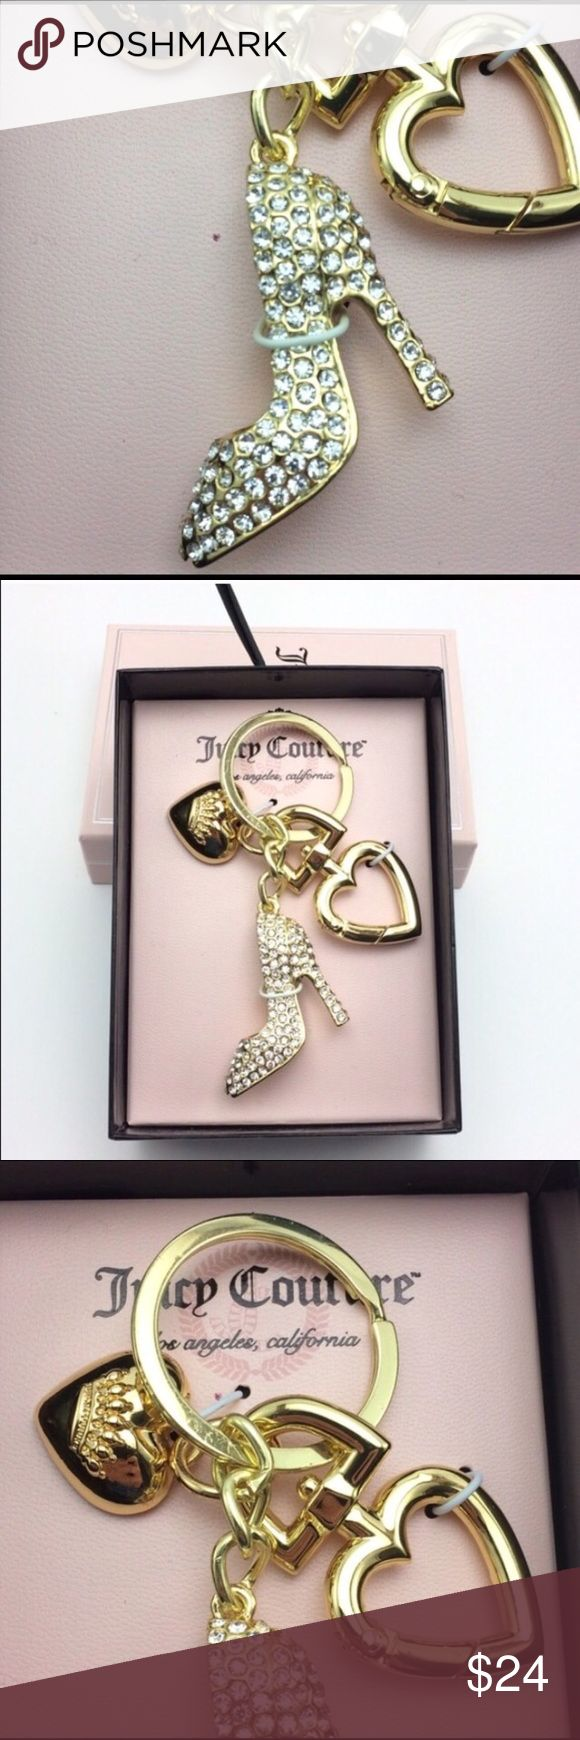 Juicy Couture high heel key fob/charm Gold tone heart shaped lobster clasp key fob. White rhinestone embellished heel and small 'Juicy' heart. Juicy Couture Jewelry